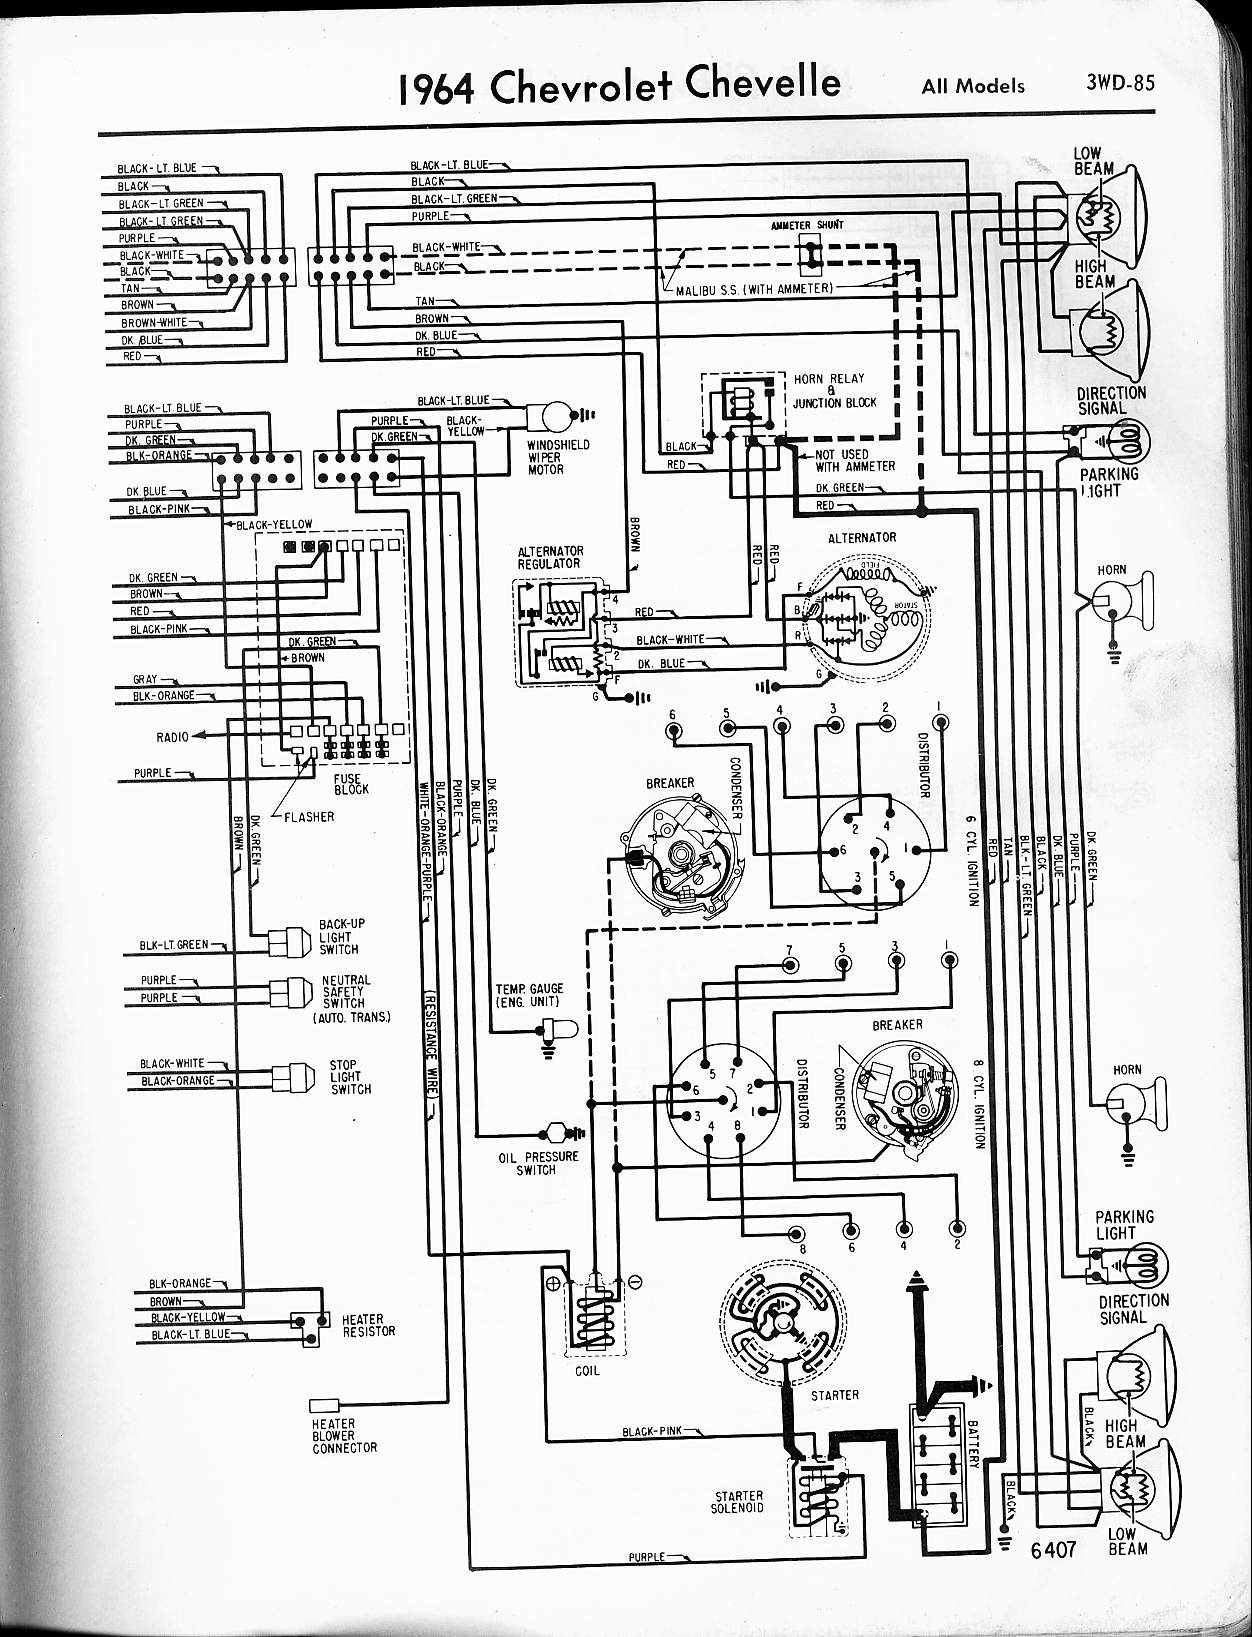 JfQtoX as well 4i9rl 94 Chevy Suburban Abs Brakes About Hundred Yards Light  es Back likewise 1965 C10 Fuse Box Diagram moreover 14273 79 as well 1965 Corvair Vin Location. on 65 chevy truck wiring diagram